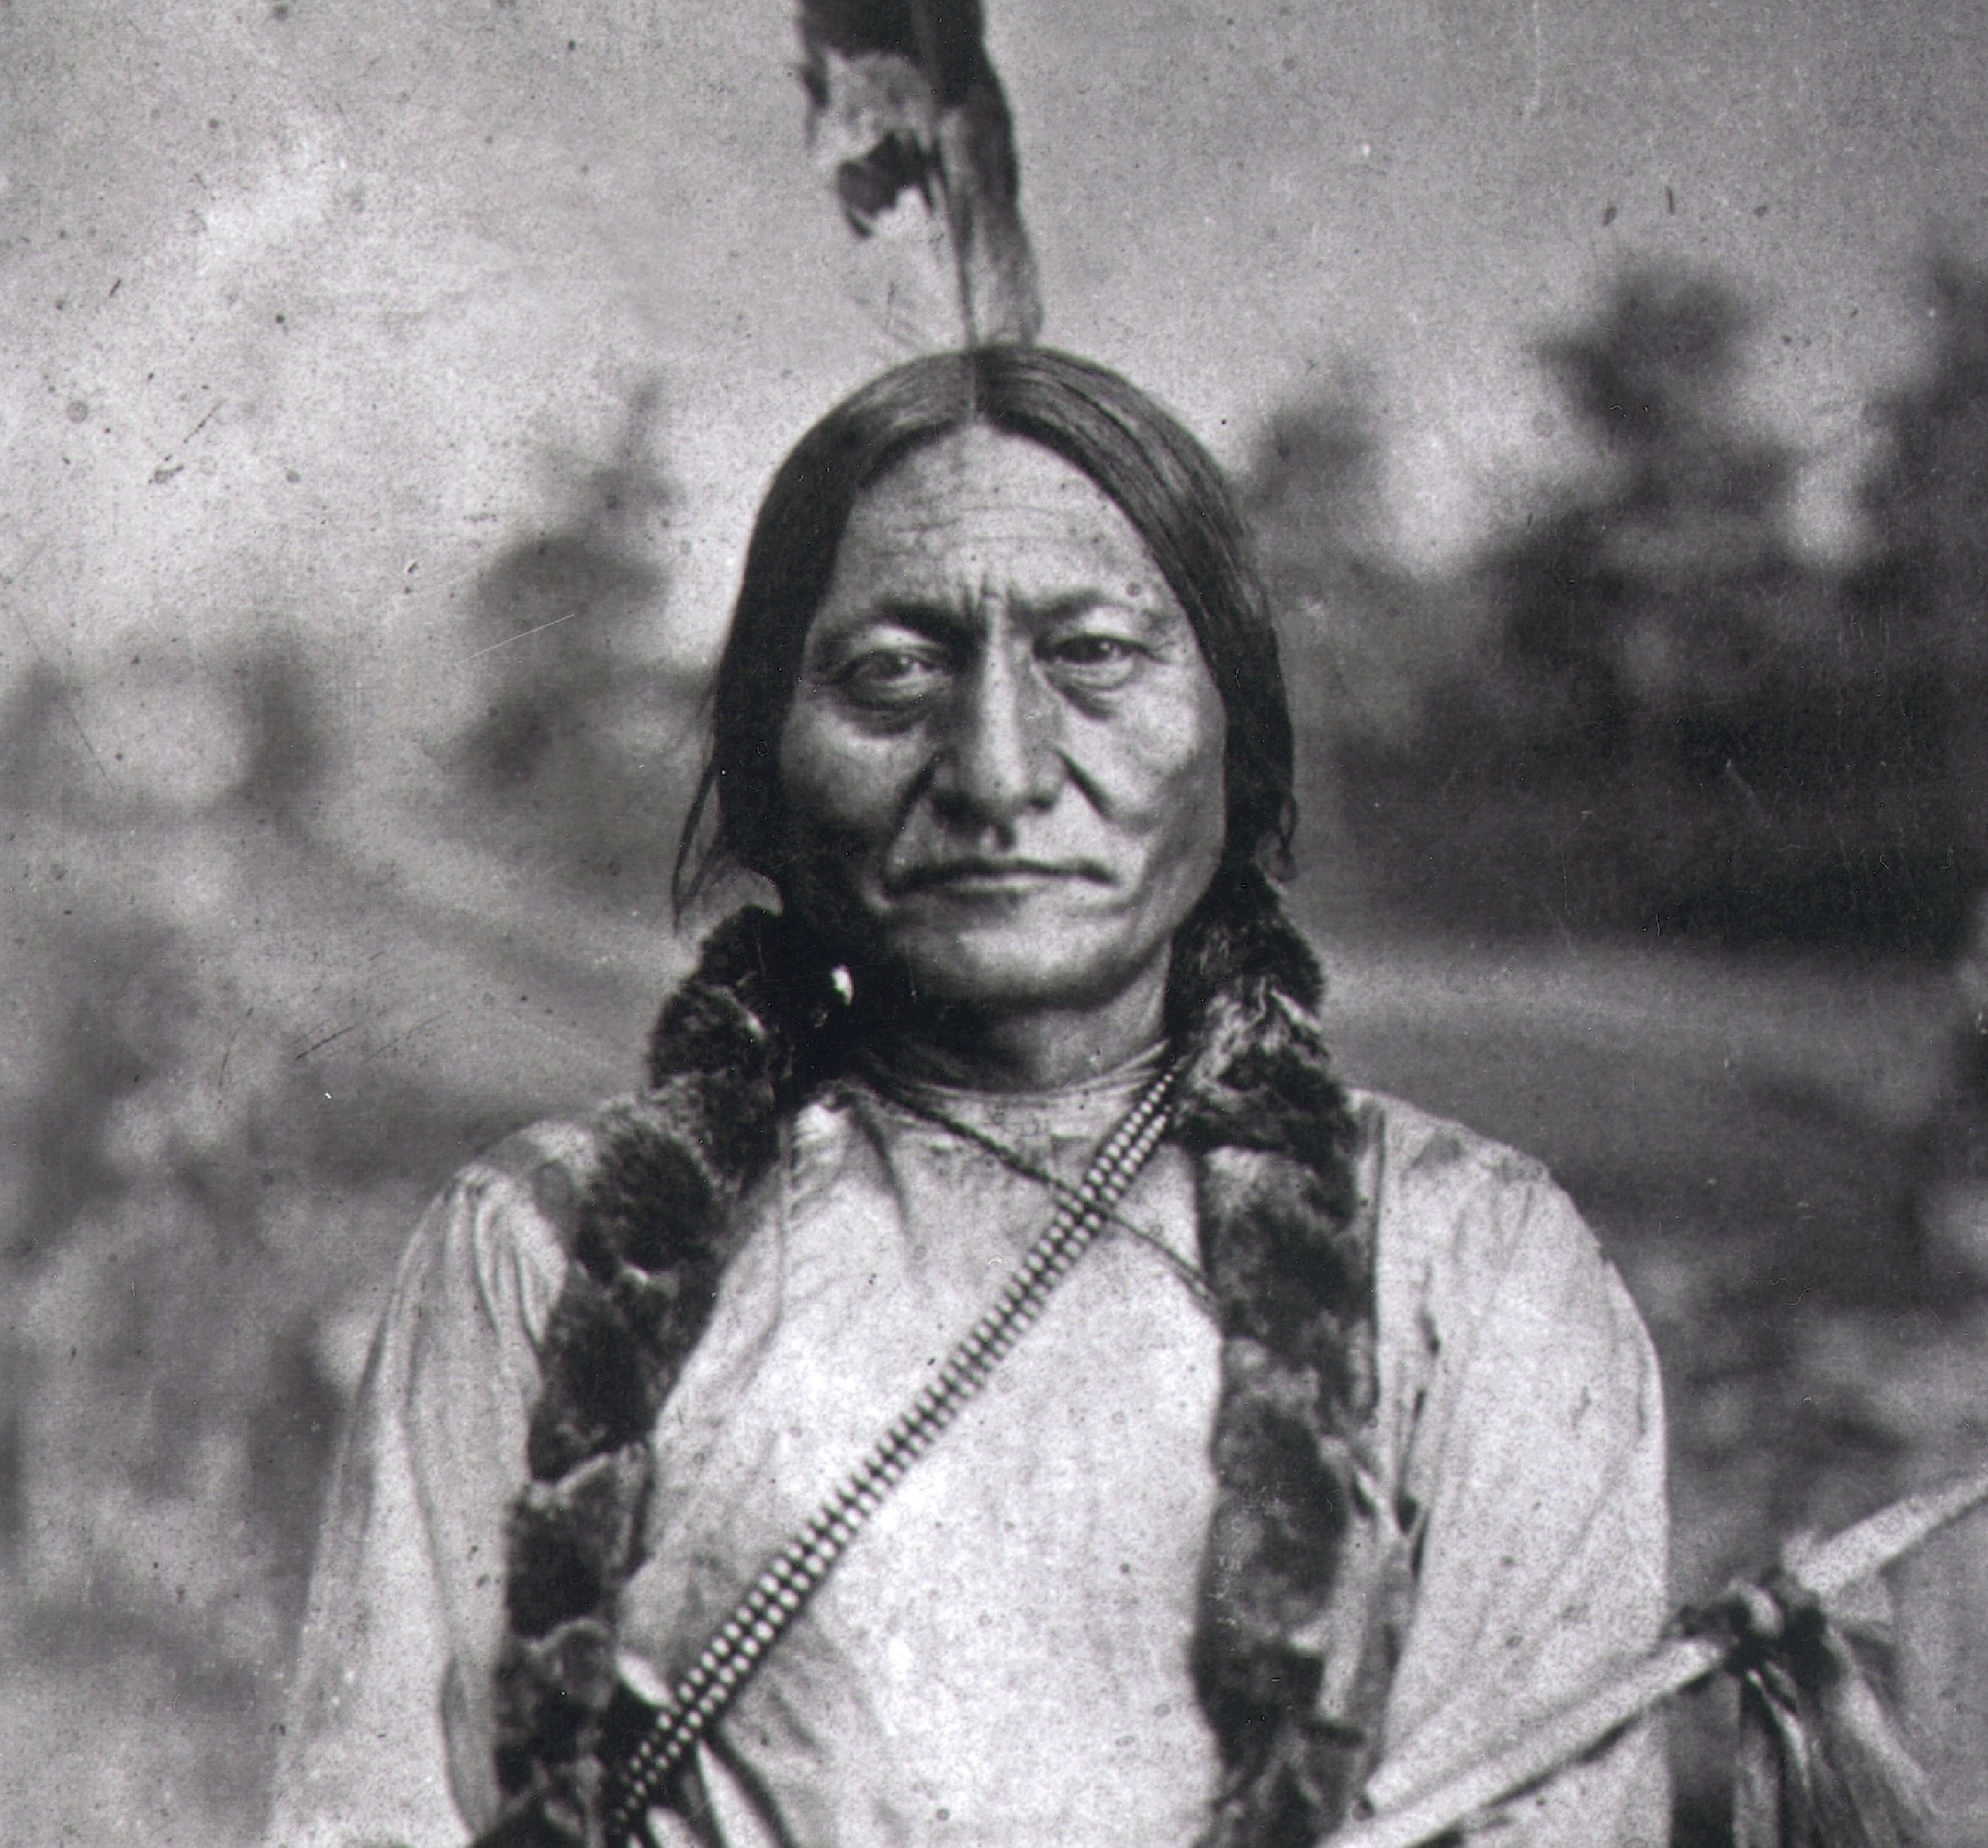 Mandatory Credit: Photo by Bill Manns/Shutterstock (7647211ng) SITTING BULL or Tatanka Iyotake, 1831-90, Teton Sioux Indian Chief, Hunkpapa Division, principal chief of Sioux Nation, USA, from 1867, took part in the battle against Custer and the 7th Cavalry at Little Big Horn, Montana, June 1876 Art